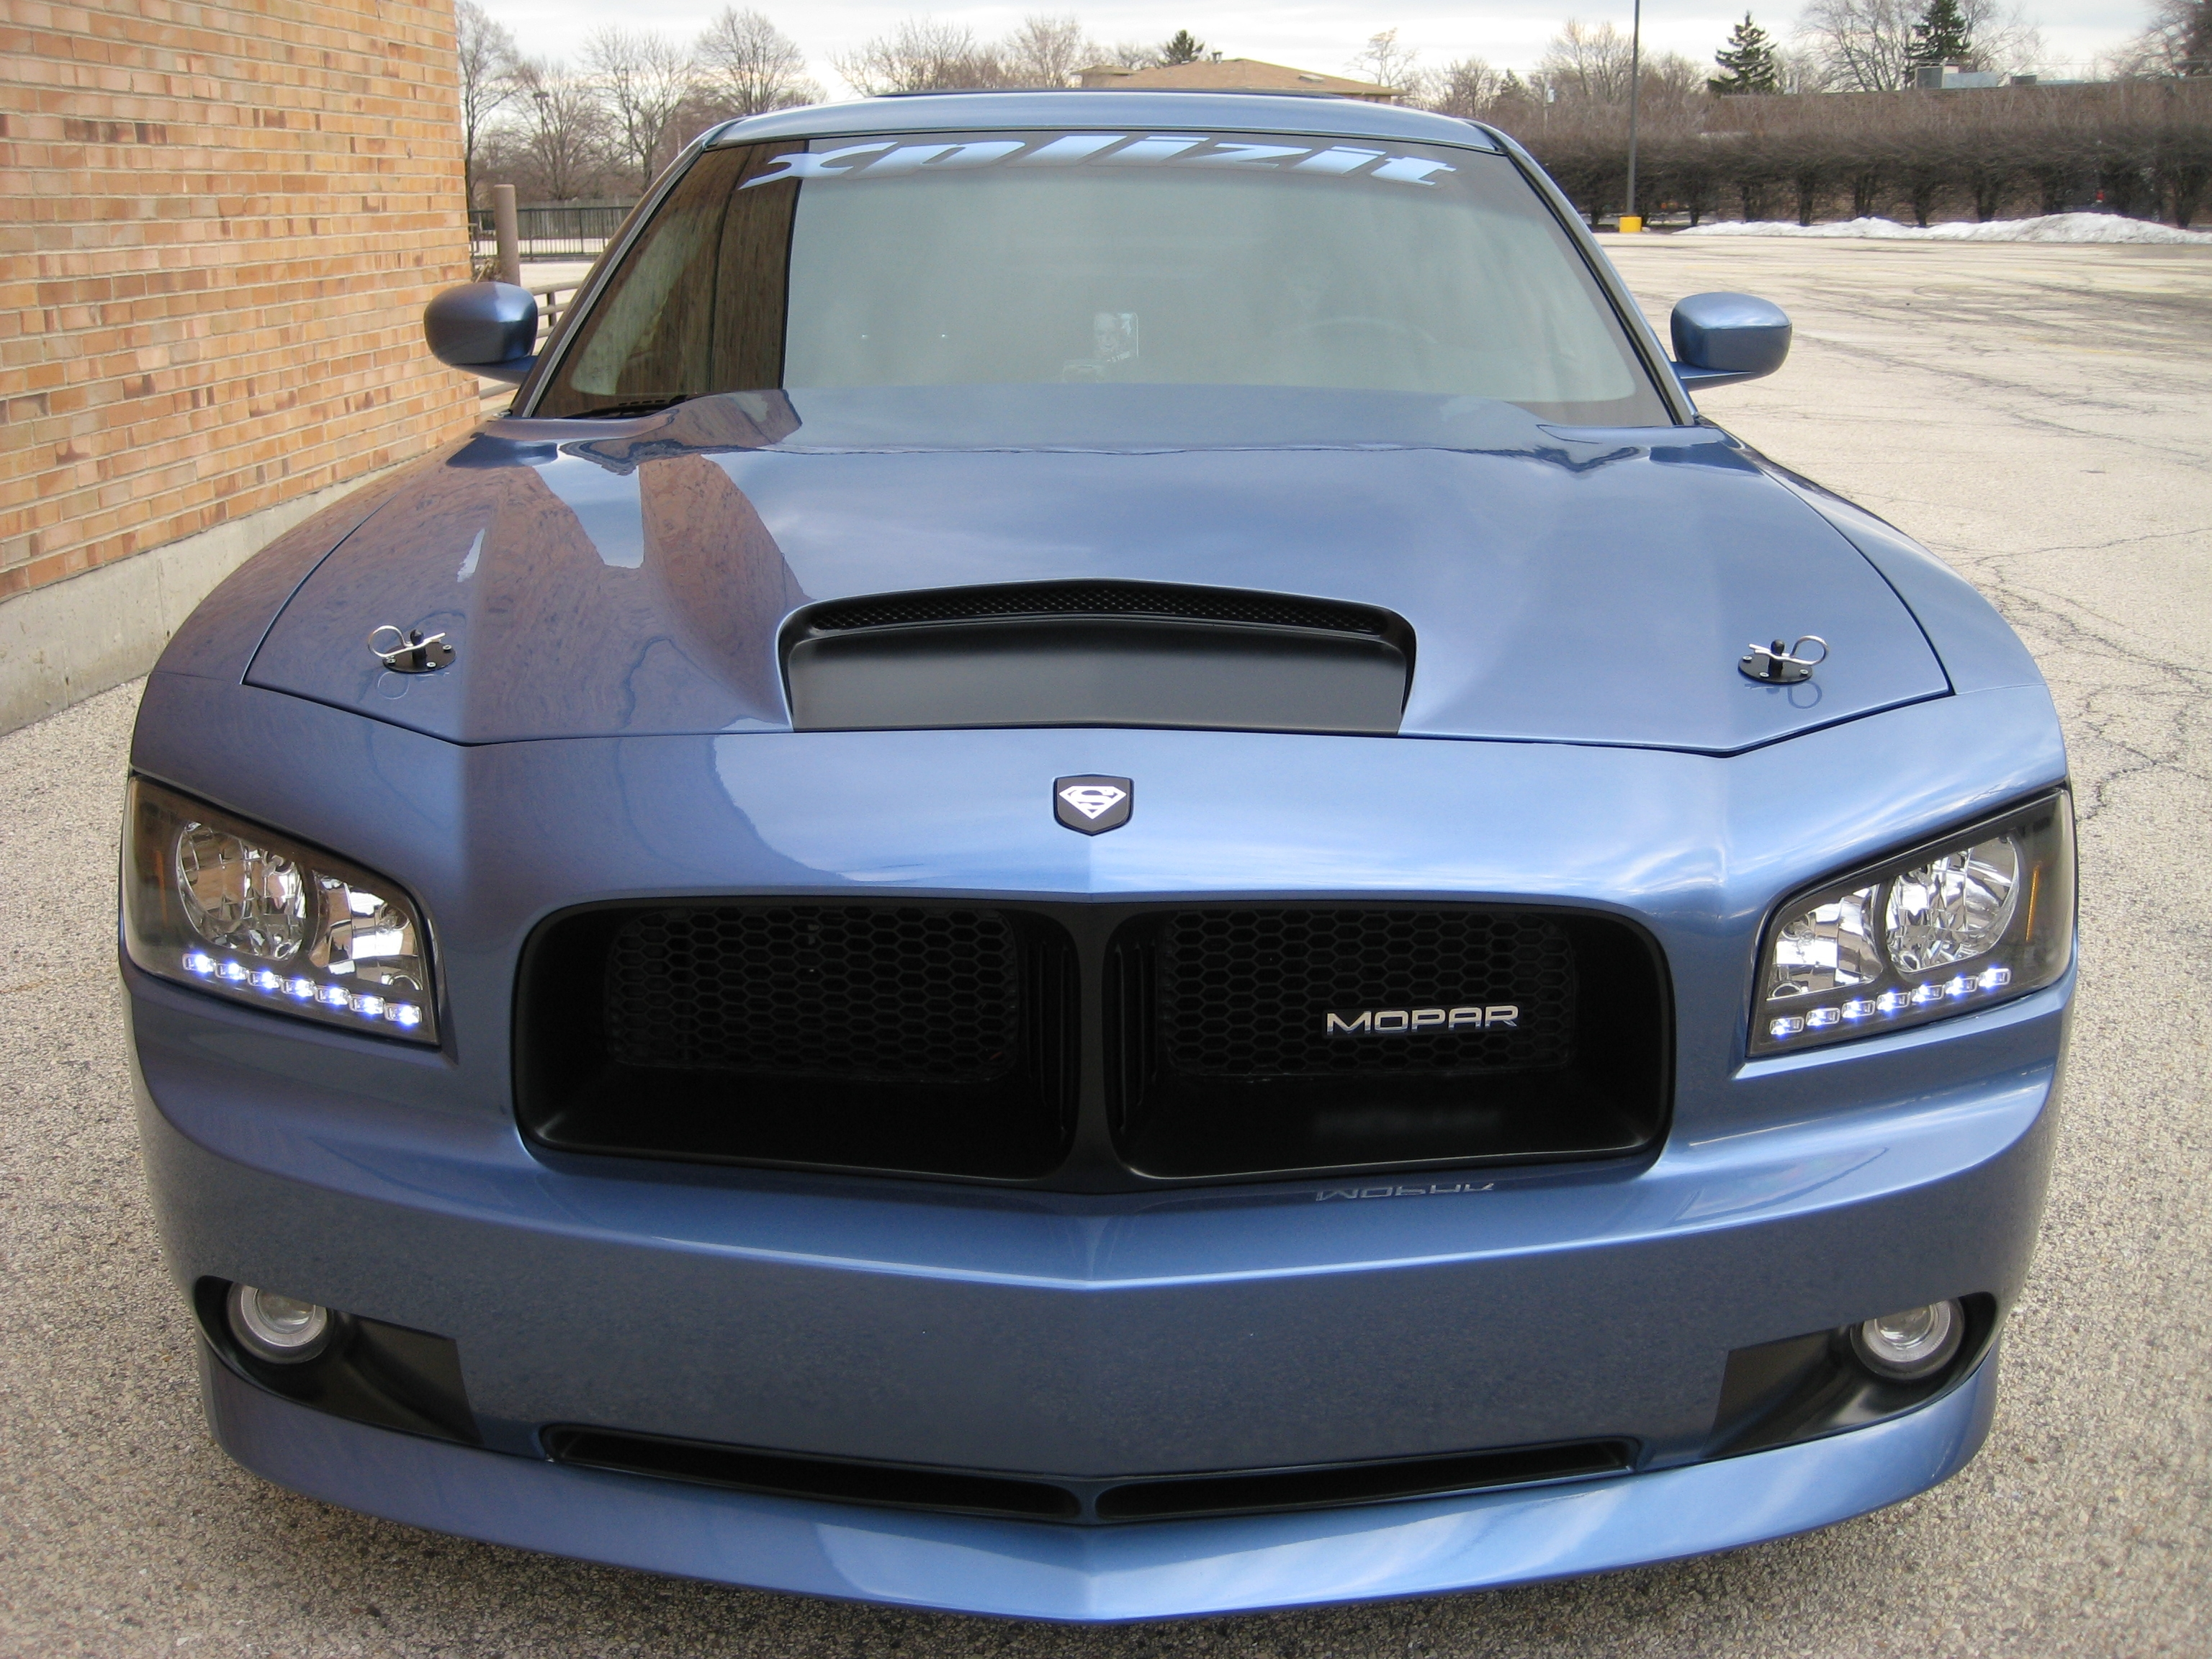 Fidostudio 2007 Dodge Charger 15614642